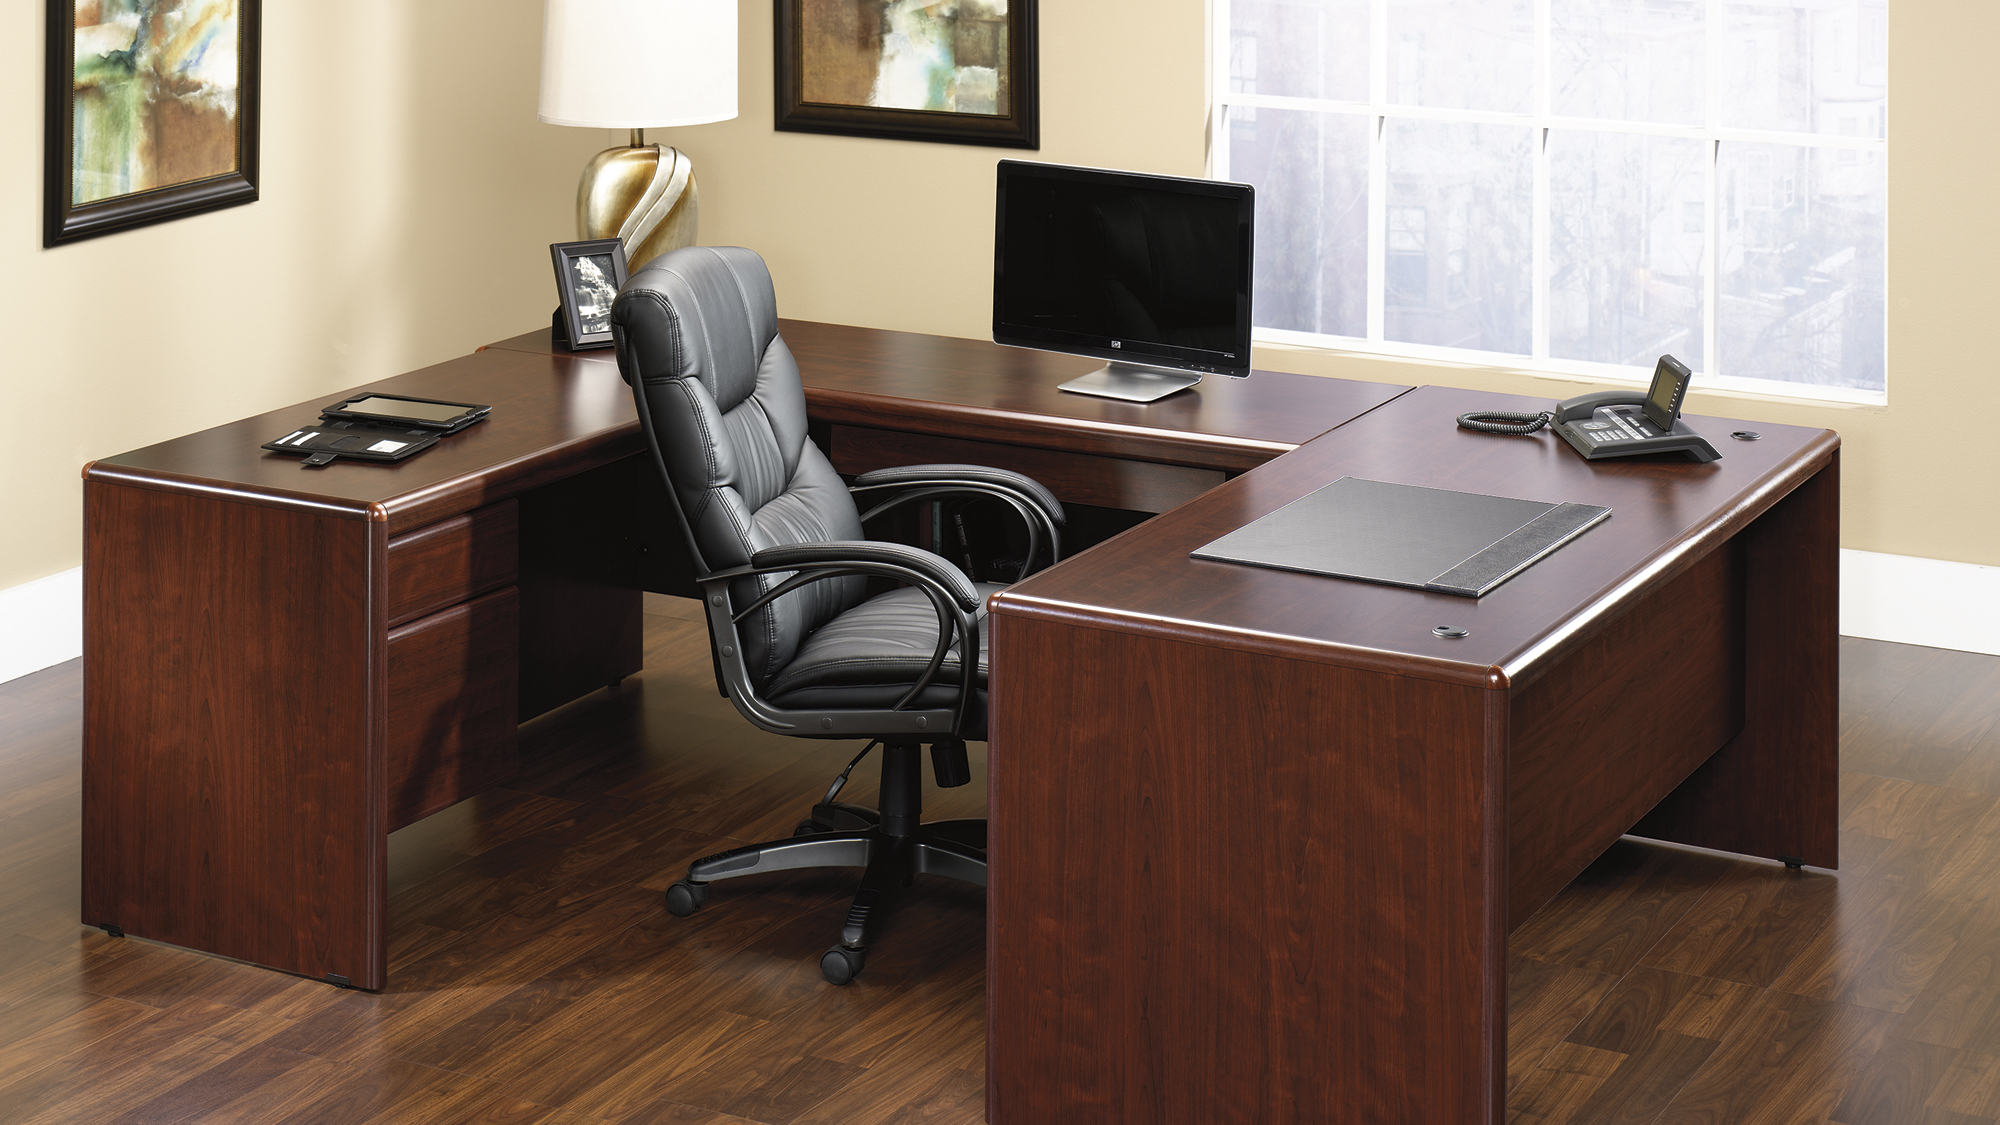 lovely wooden desk by sauder furniture with black chair on wooden floor which matched with cream wall for home office decor ideas